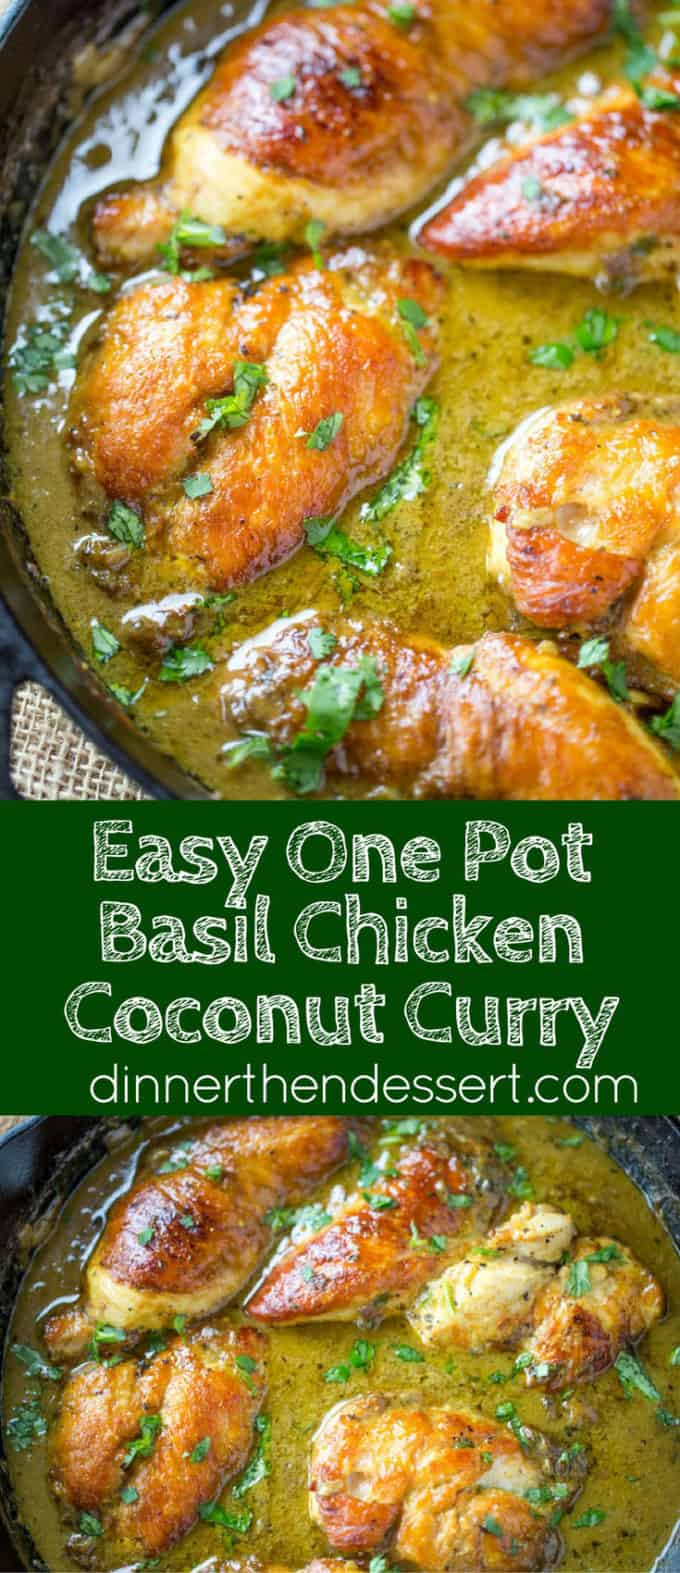 One Pot Basil Chicken Coconut Curry collage